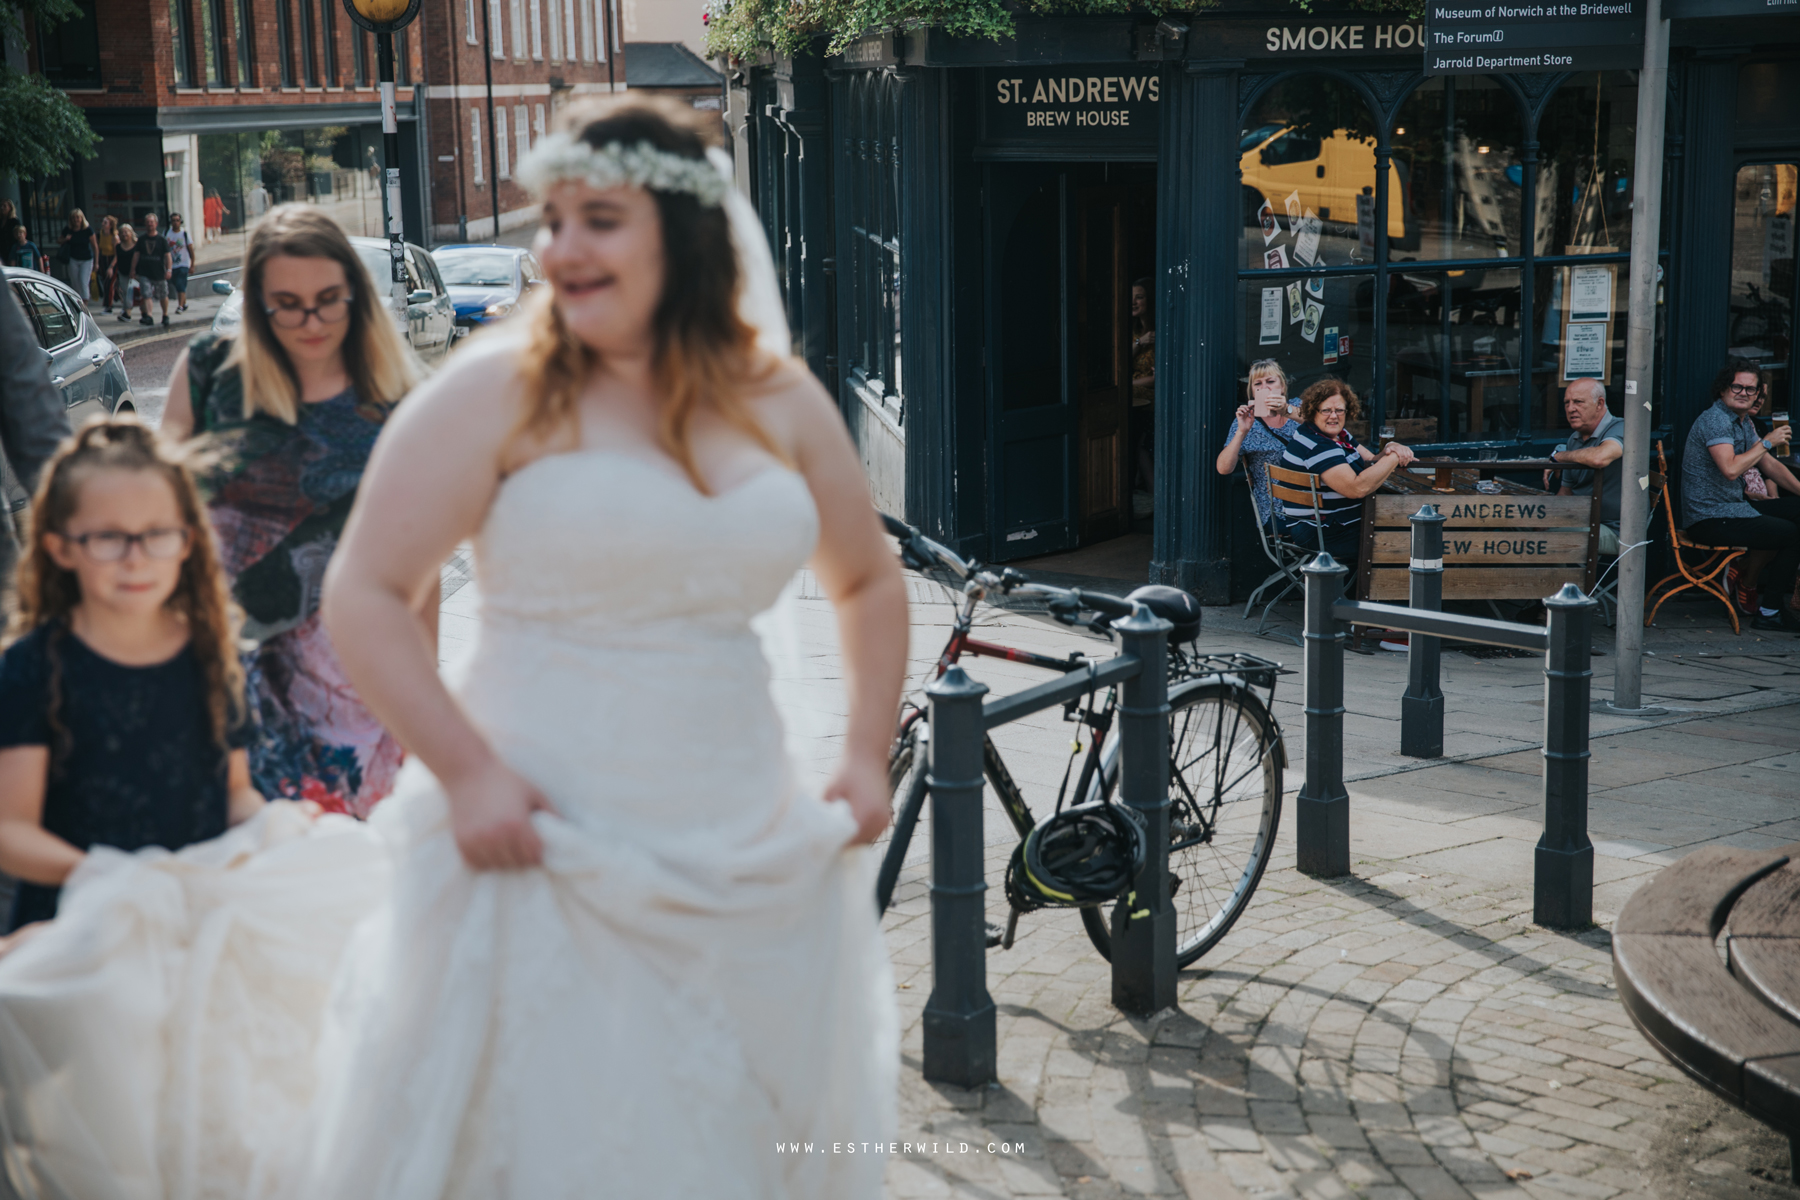 Norwich_Castle_Arcade_Grosvenor_Chip_Birdcage_Cathedral_Cloisters_Refectory_Wedding_Photography_Esther_Wild_Photographer_Norfolk_Kings_Lynn_3R8A1769.jpg